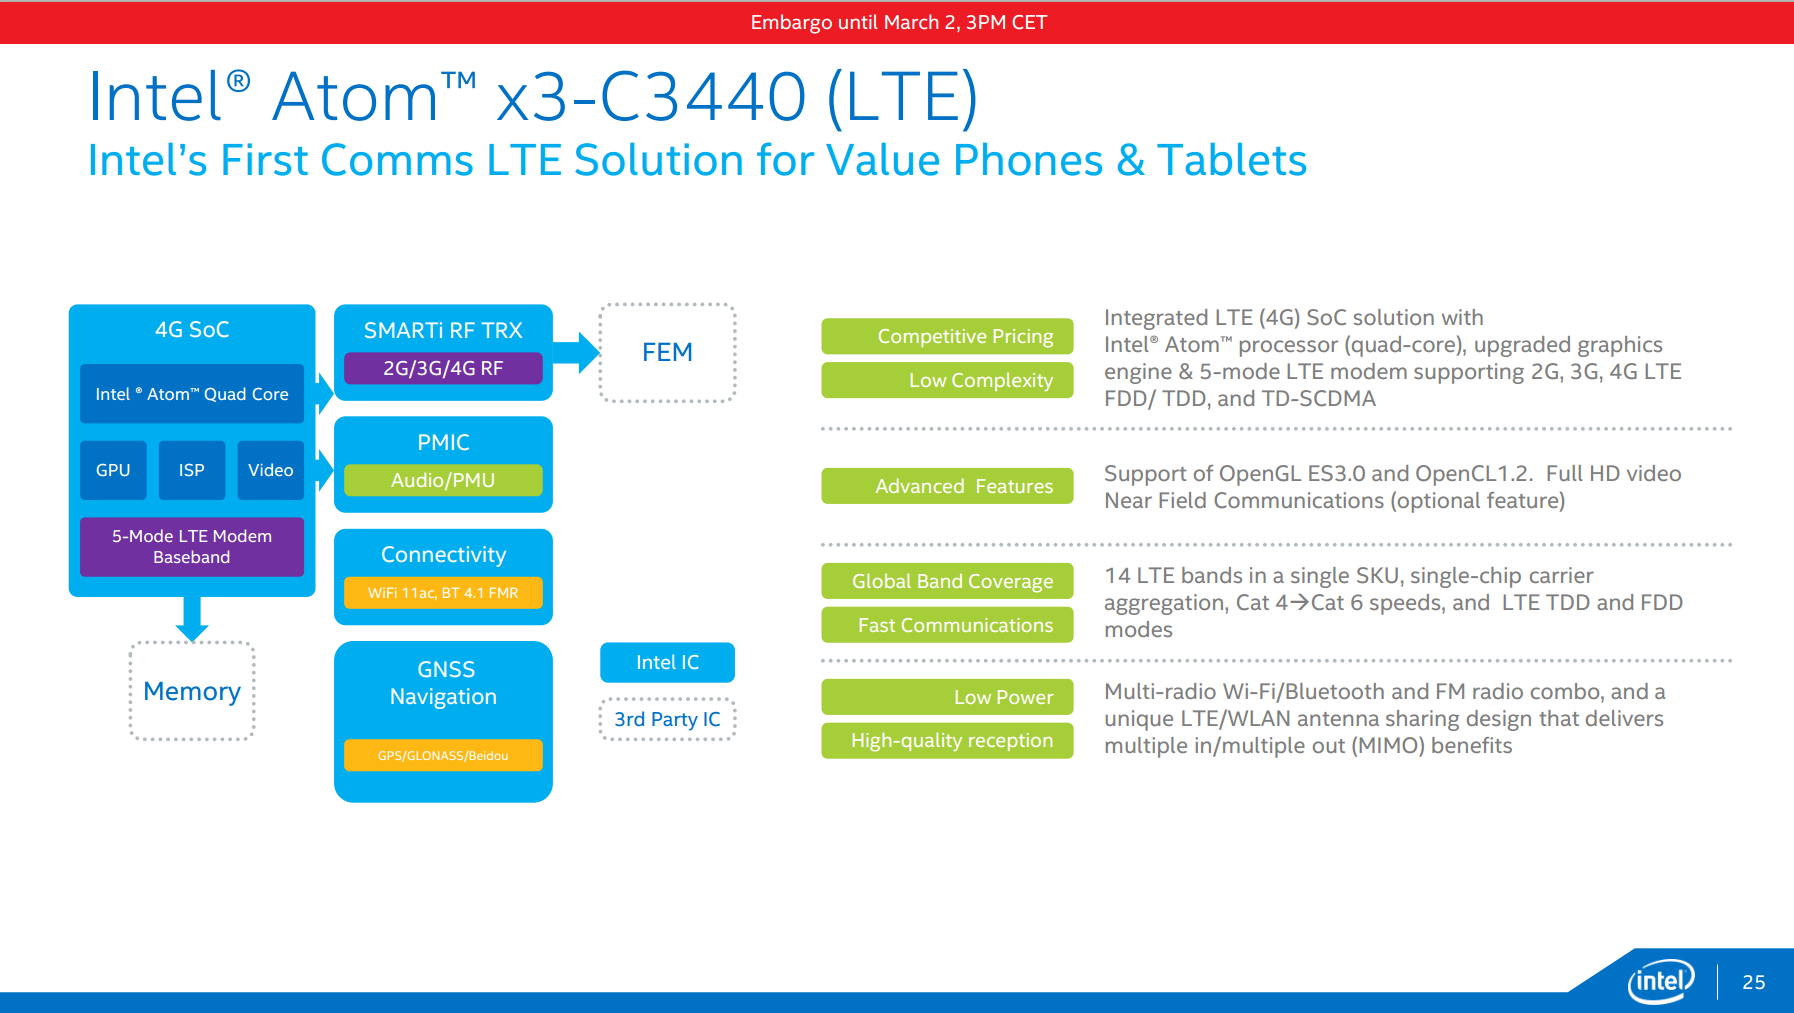 Intel at MWC 2015: SoFIA, Rockchip, Low Cost Integrated LTE